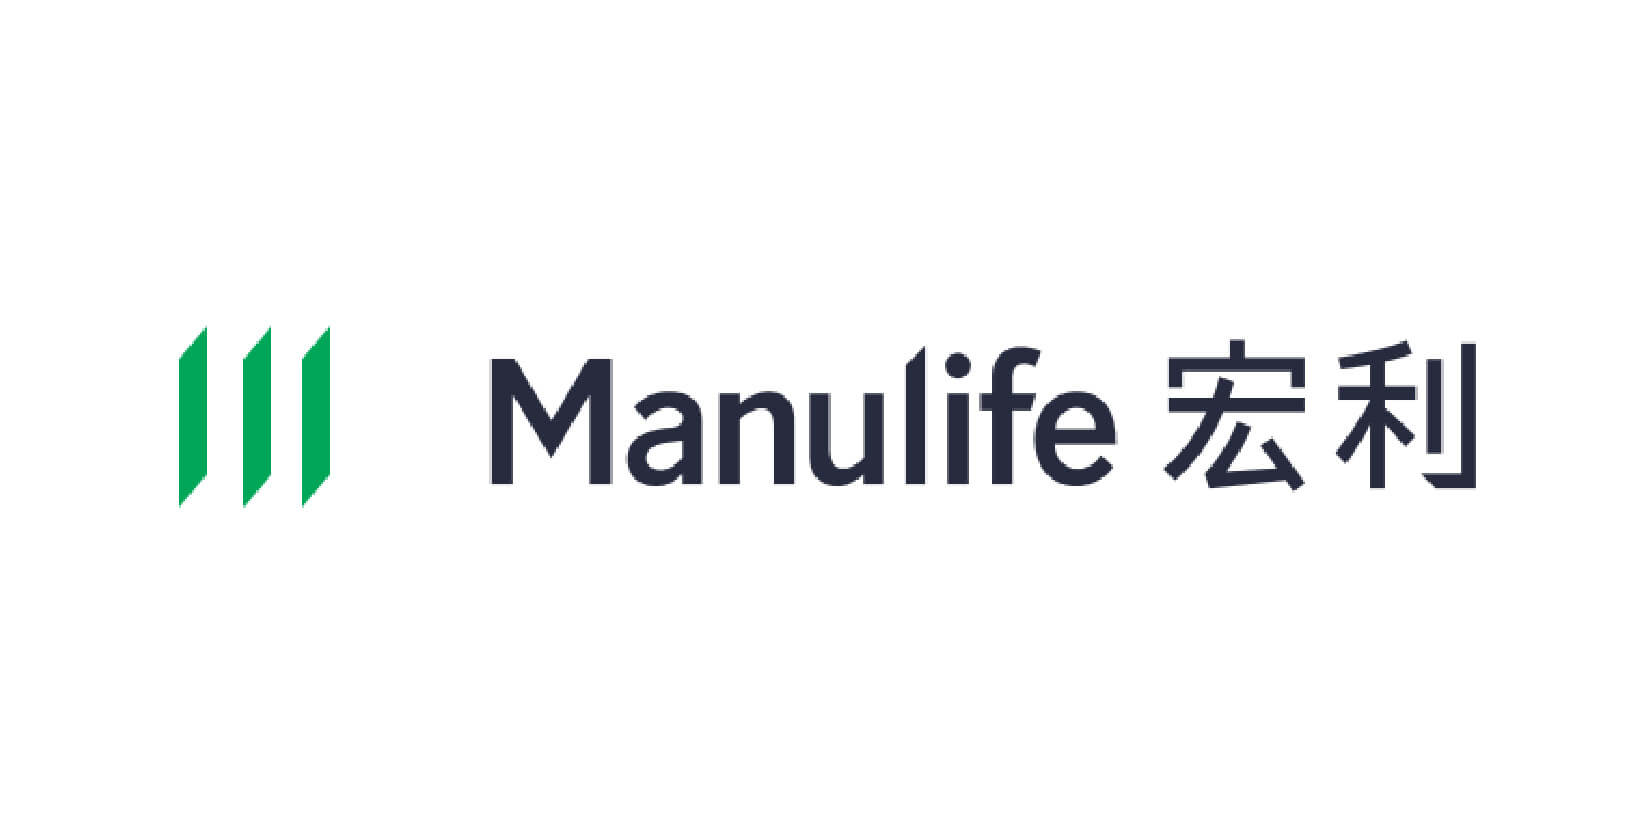 Mannulife 宏利 macau jobscall.me recruitment ad 澳門招聘-01.jpg